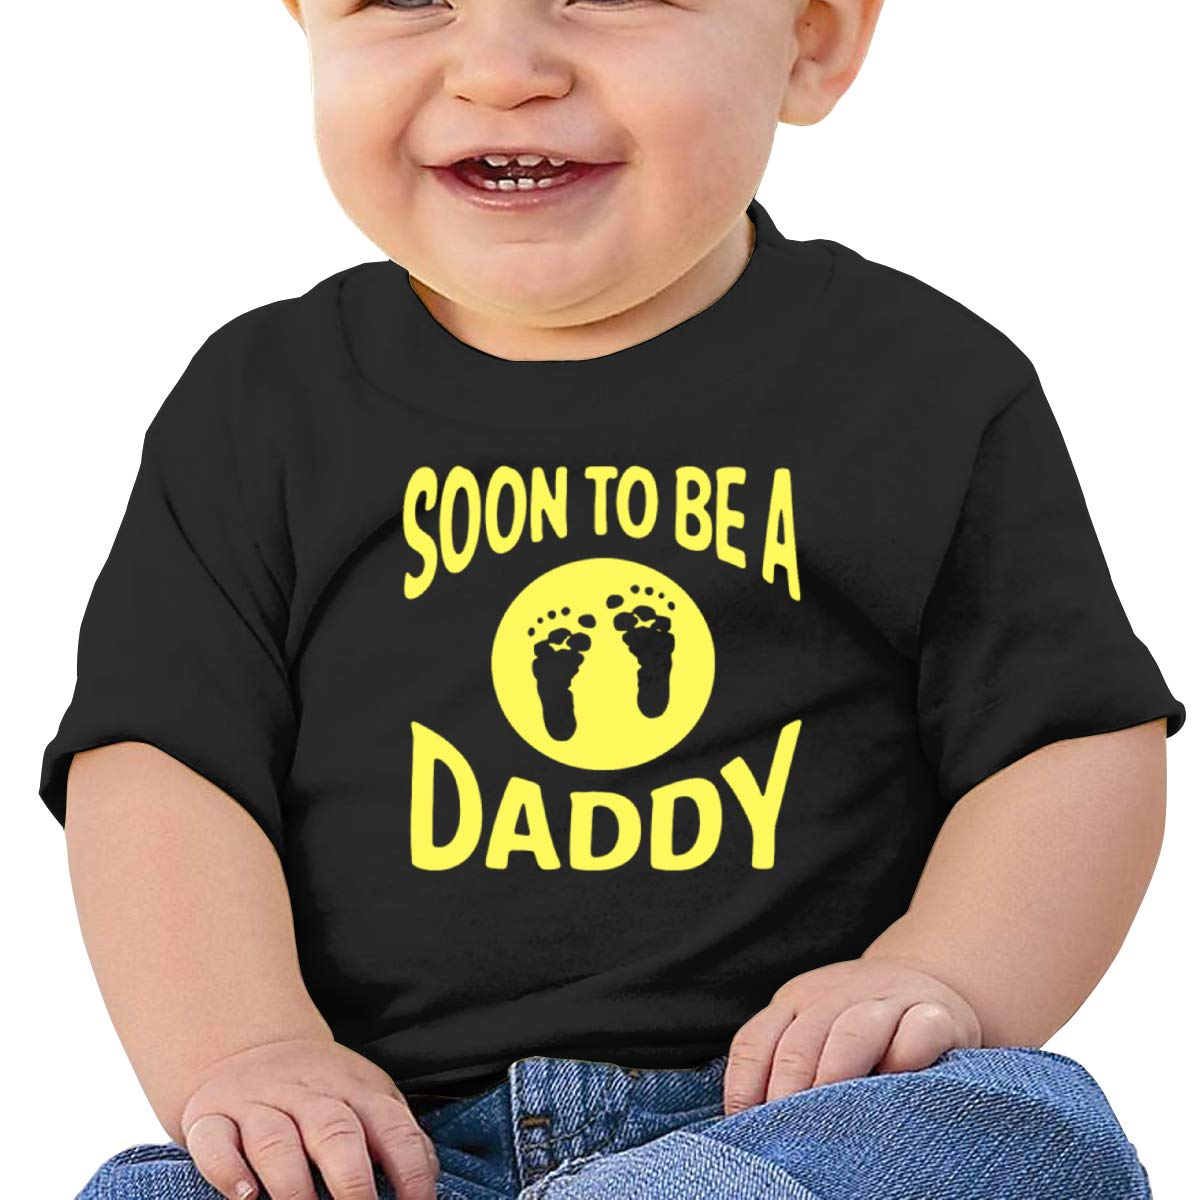 Moniery Soon to Be A Daddy Short Sleeves T Shirt Baby Boy Kids